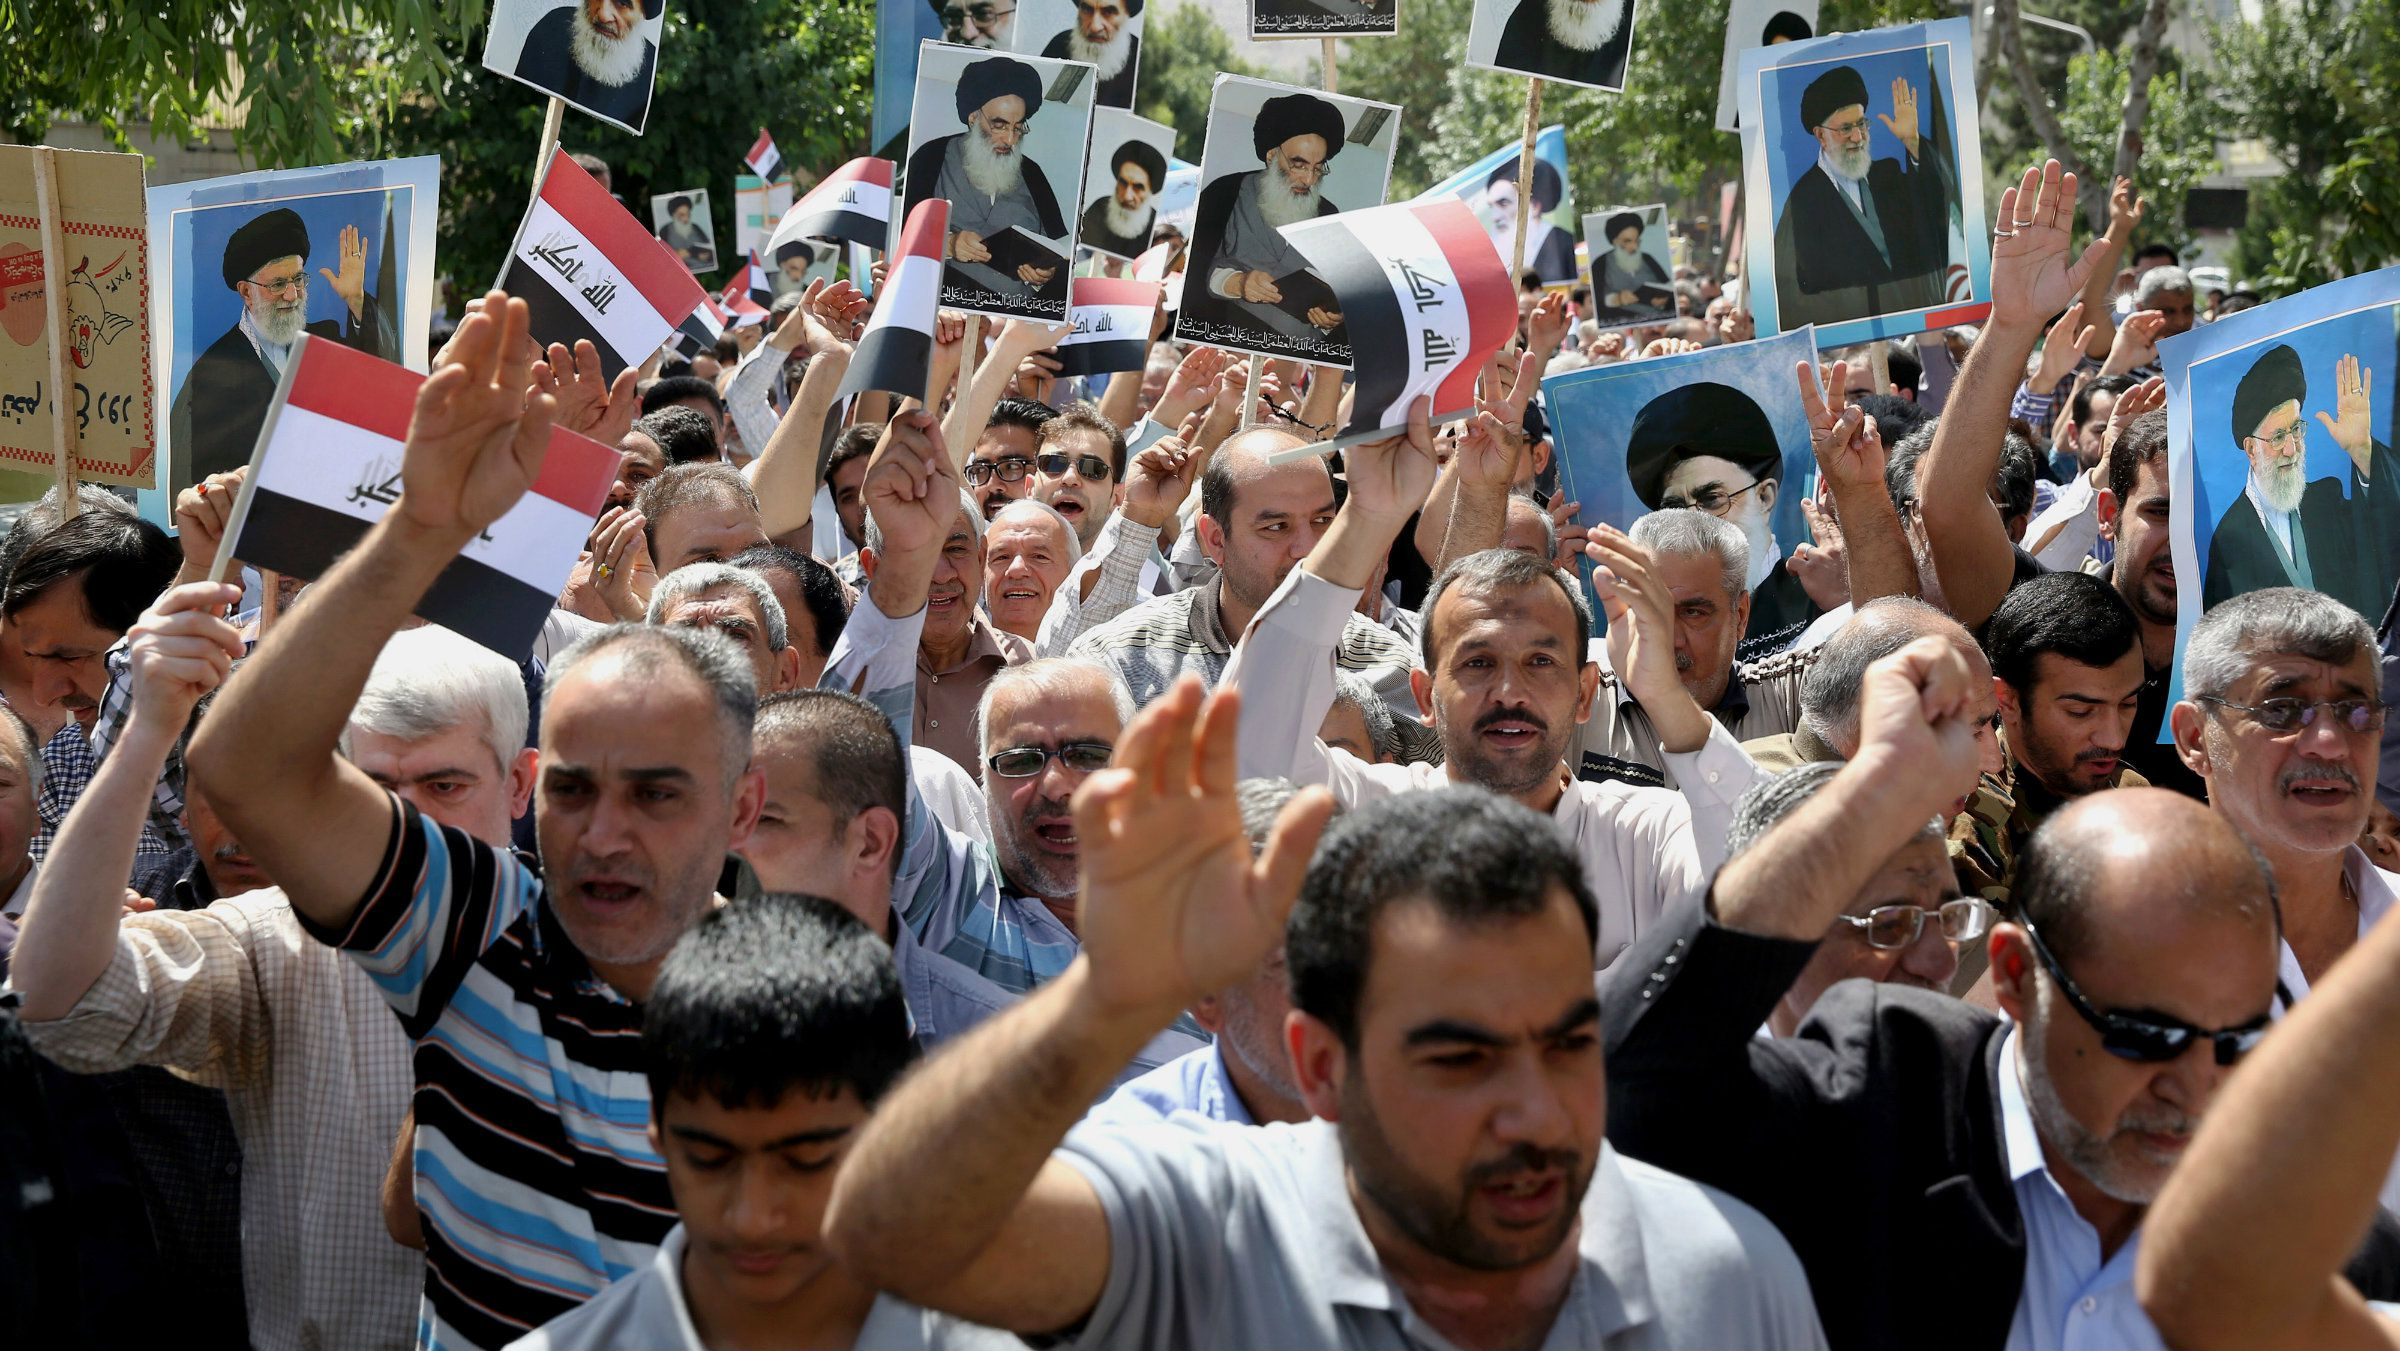 Iraqis living in Iran hold a demonstration against Sunni militants of the al-Qaida-inspired Islamic State of Iraq and the Levant, or ISIL, and to support the Grand Ayatollah Ali al-Sistani, Iraq's top Shiite cleric, shown in the posters, as some of them hold posters of the Iranian Supreme Leader Ayatollah Ali Khamenei, in Tehran, Iran, Friday, June 20, 2014.